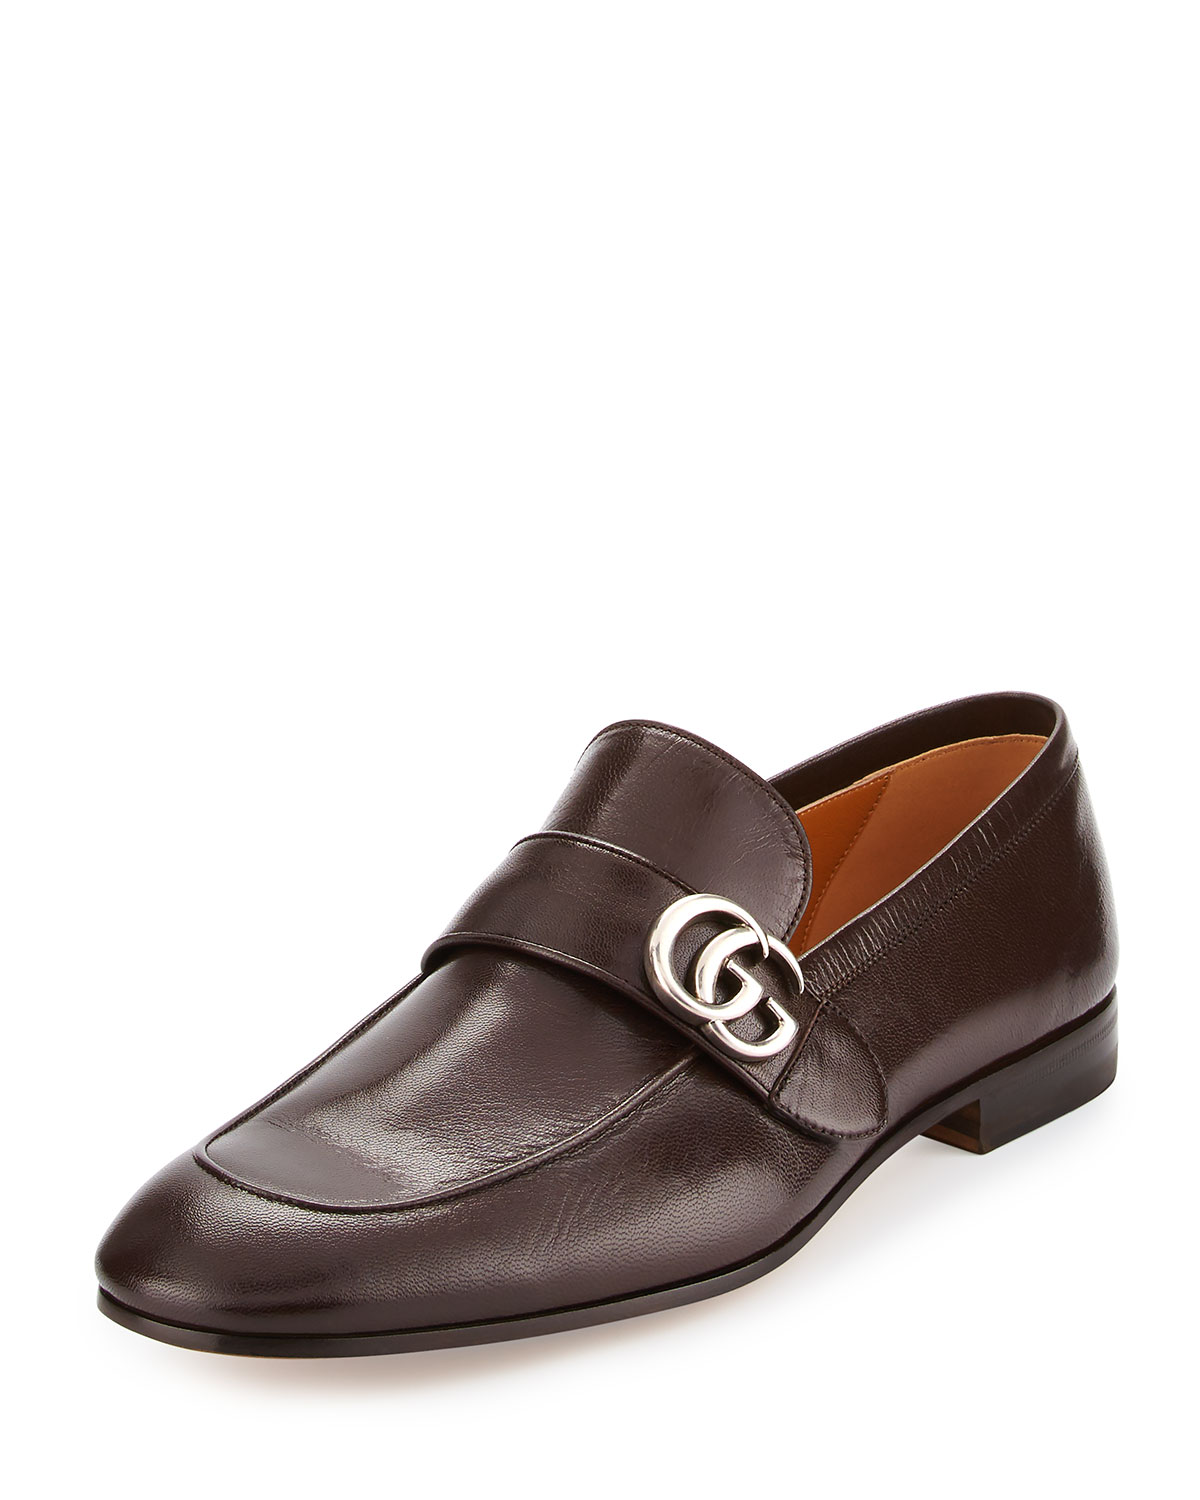 c9298d3296e Gucci Donnie Leather Loafer w GG